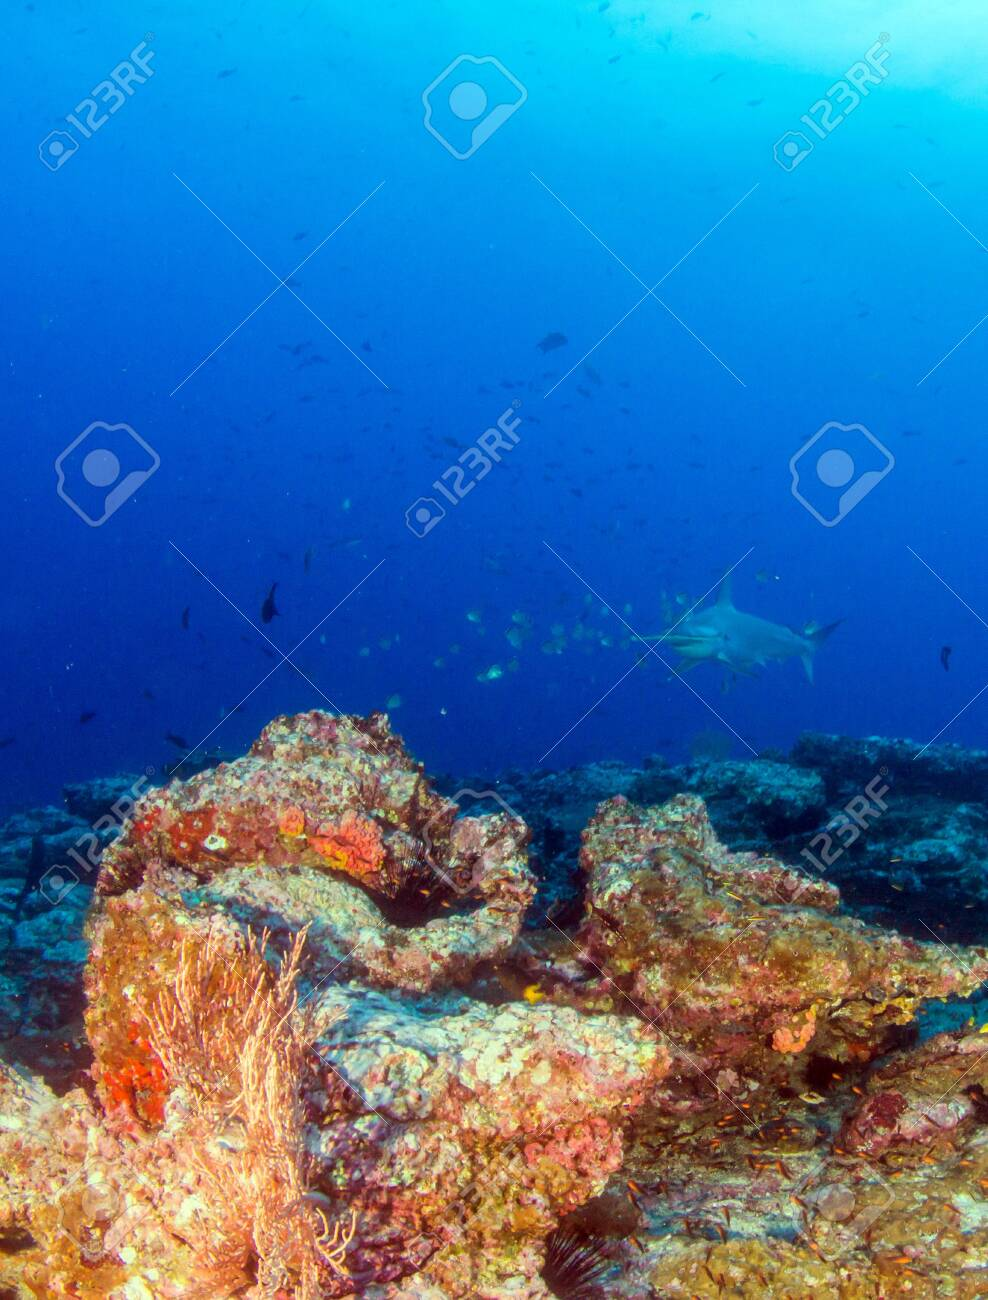 Picture shows a Hammerhead Shark at Cocos Island, Costa Rica - 137858993